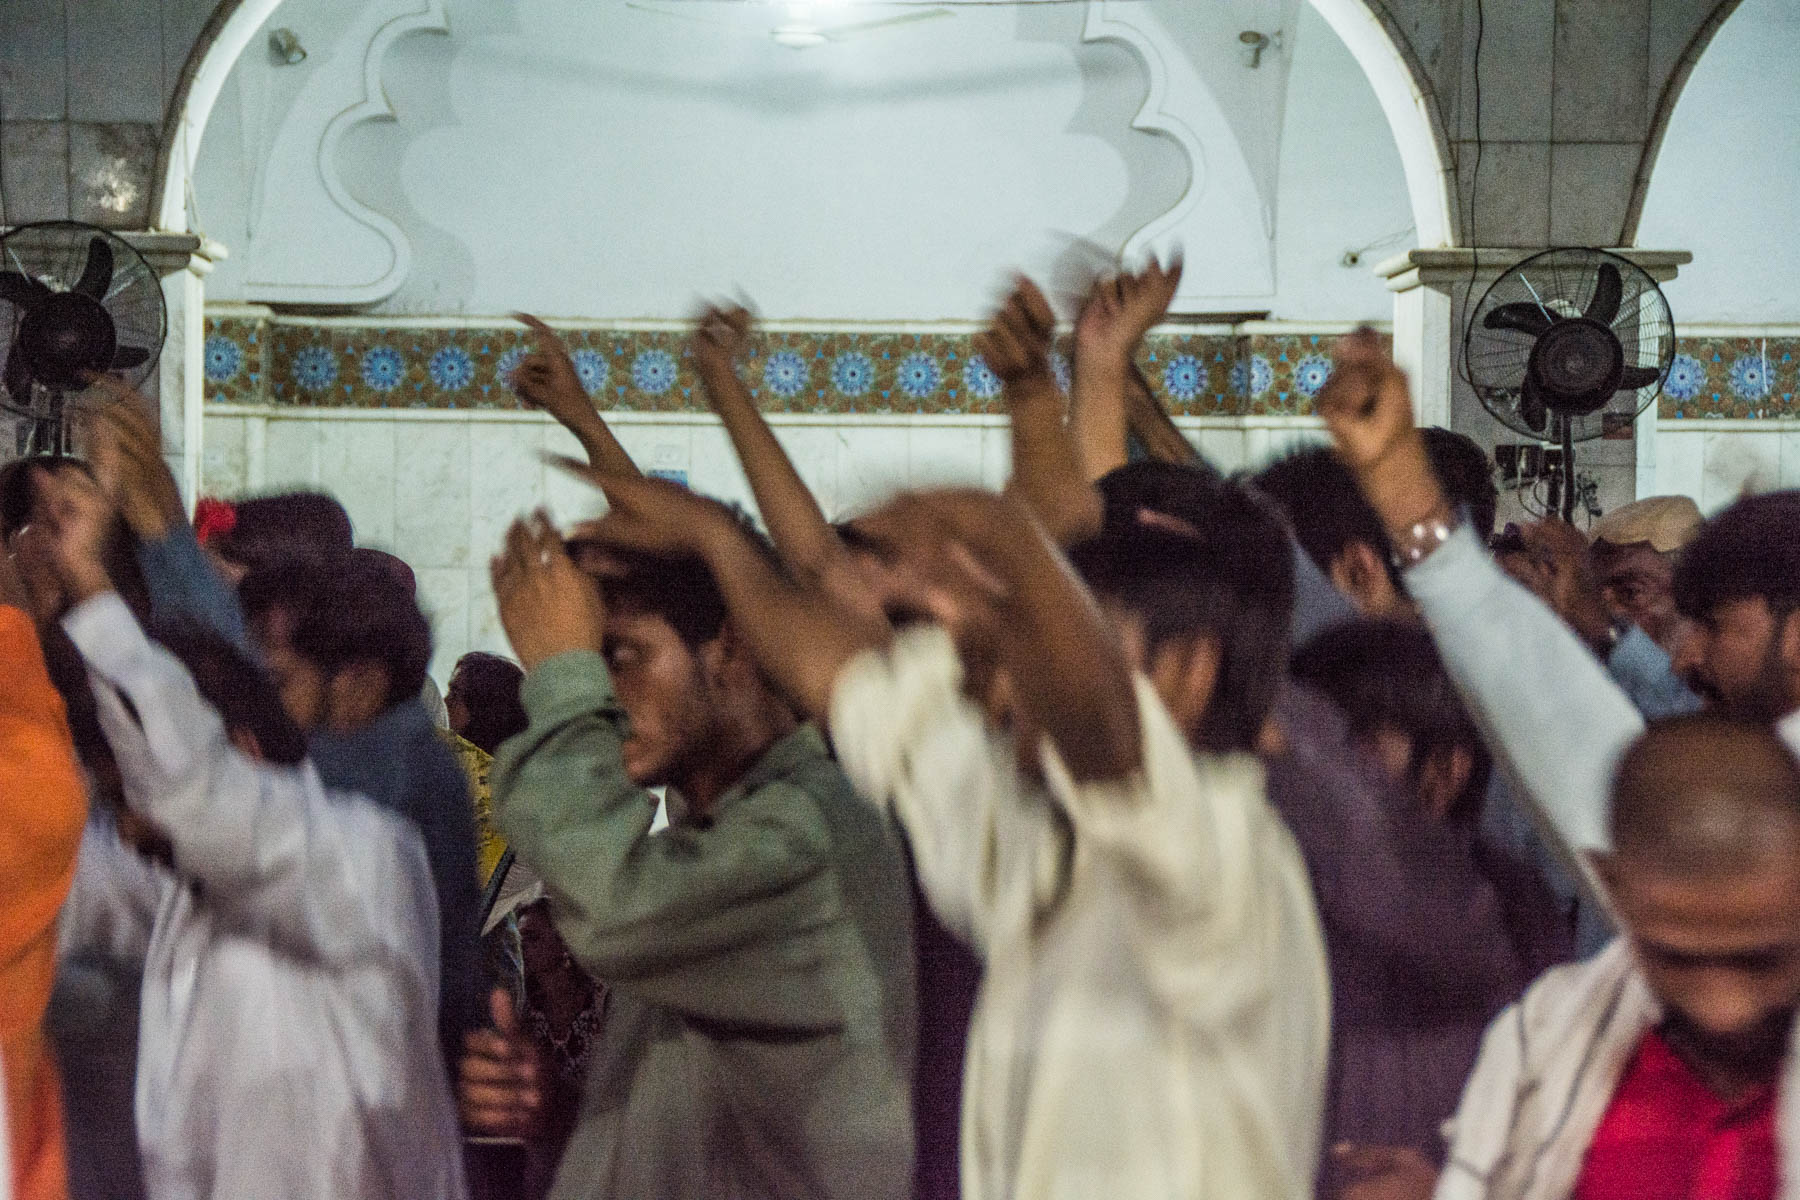 Sufi dancers at the Lal Shahbaz Qalandar shrine in Sehwan, Pakistan during Ramadan